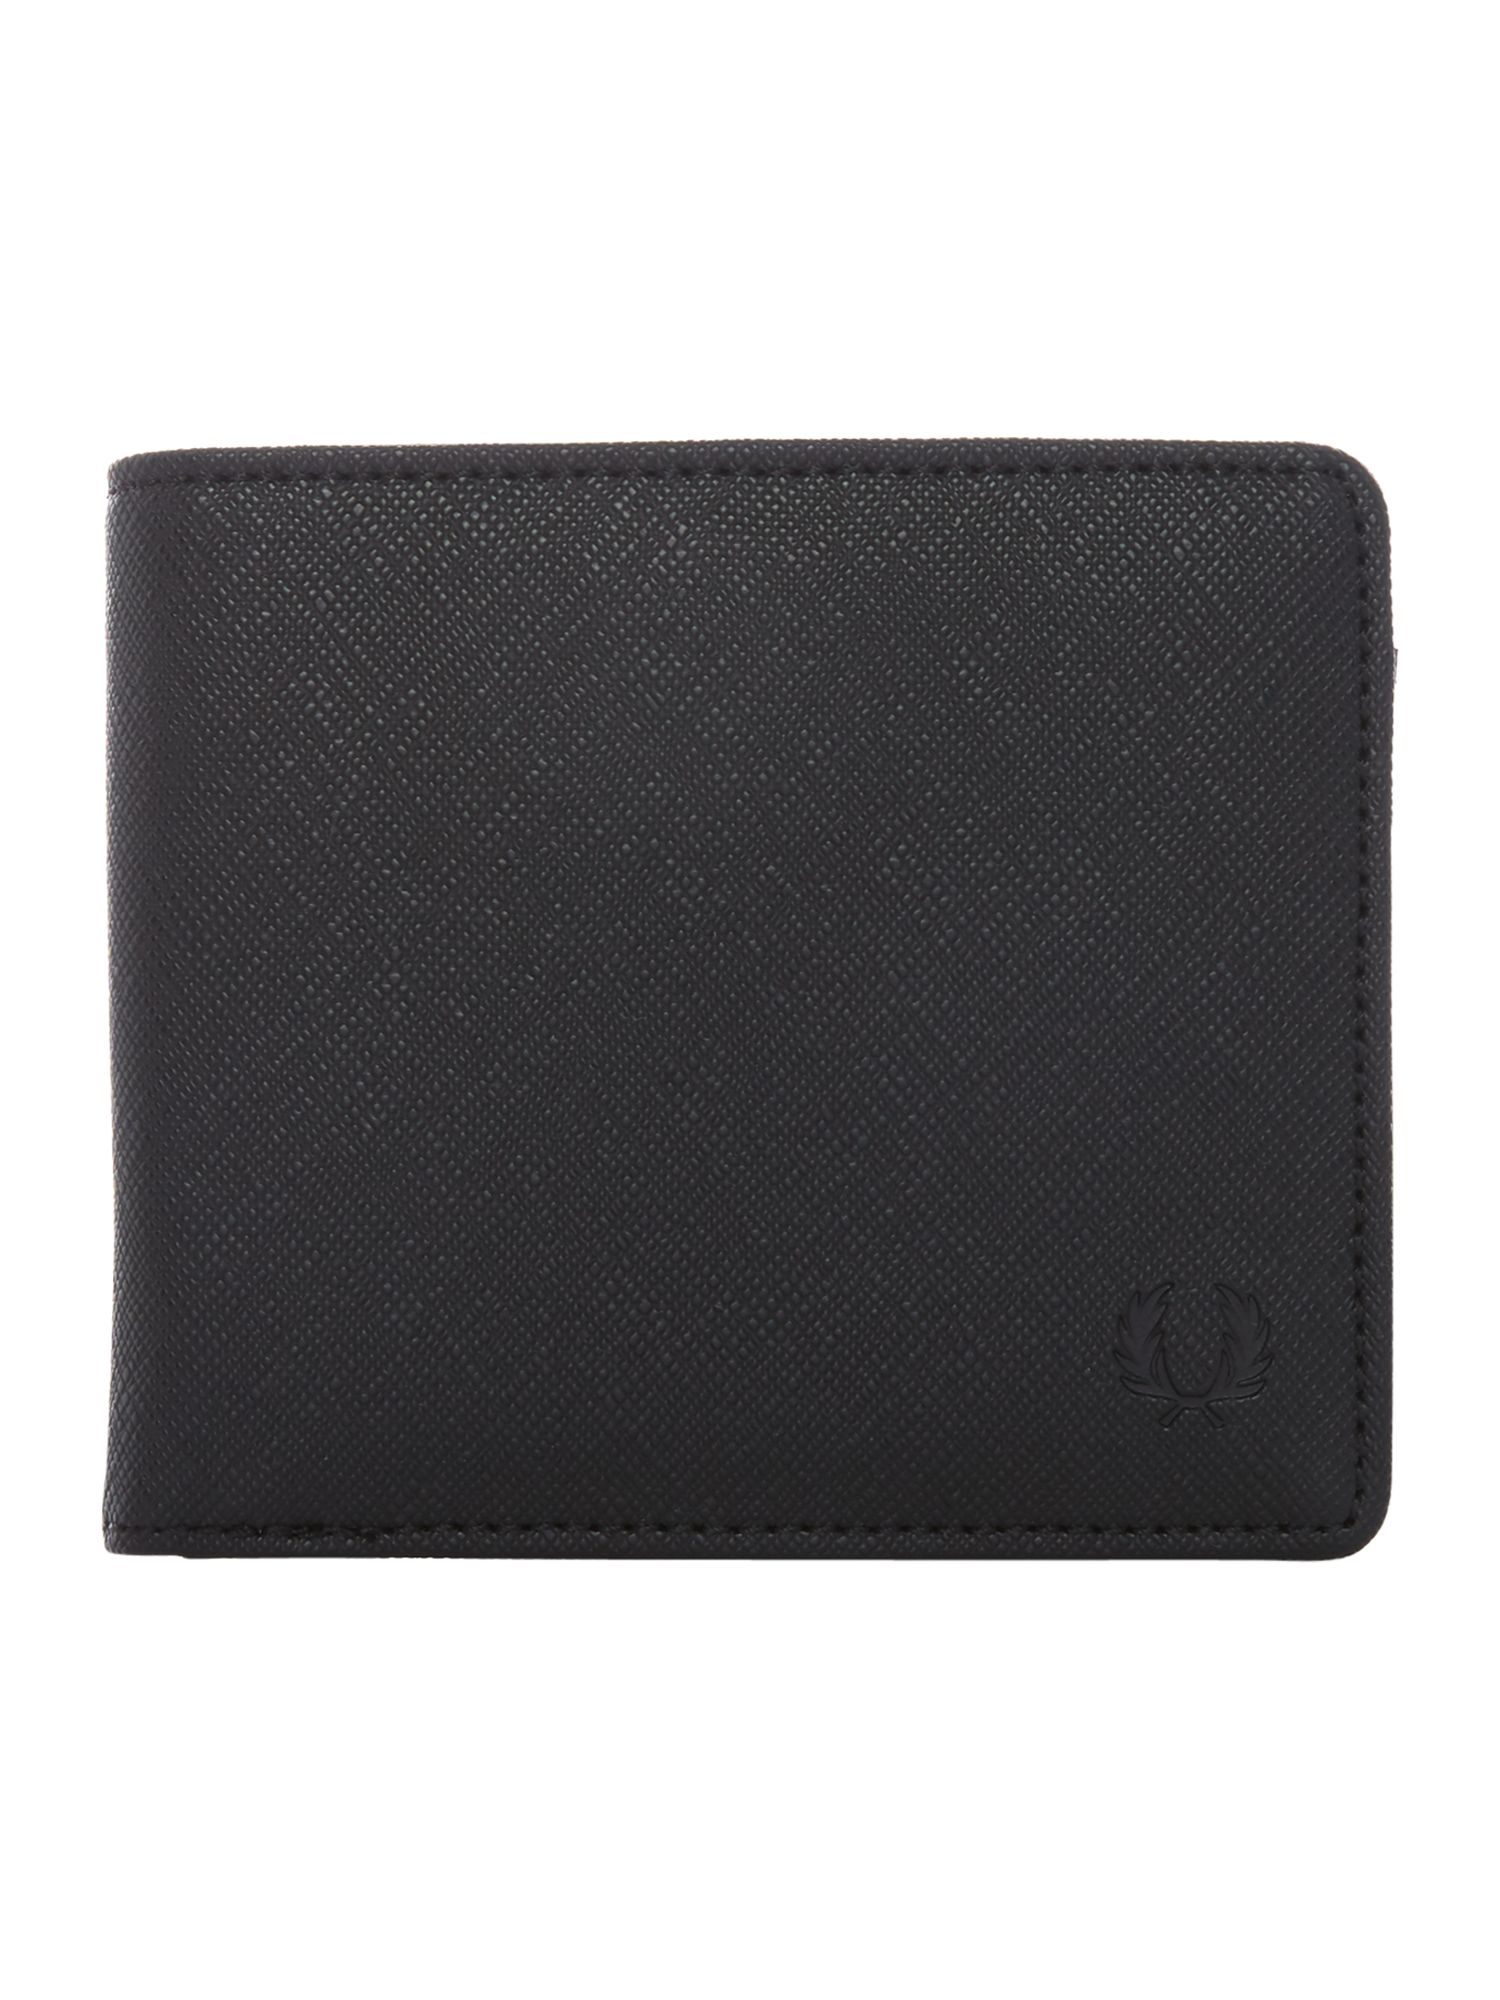 Fred Perry Saffiano Billfold Wallet, Black